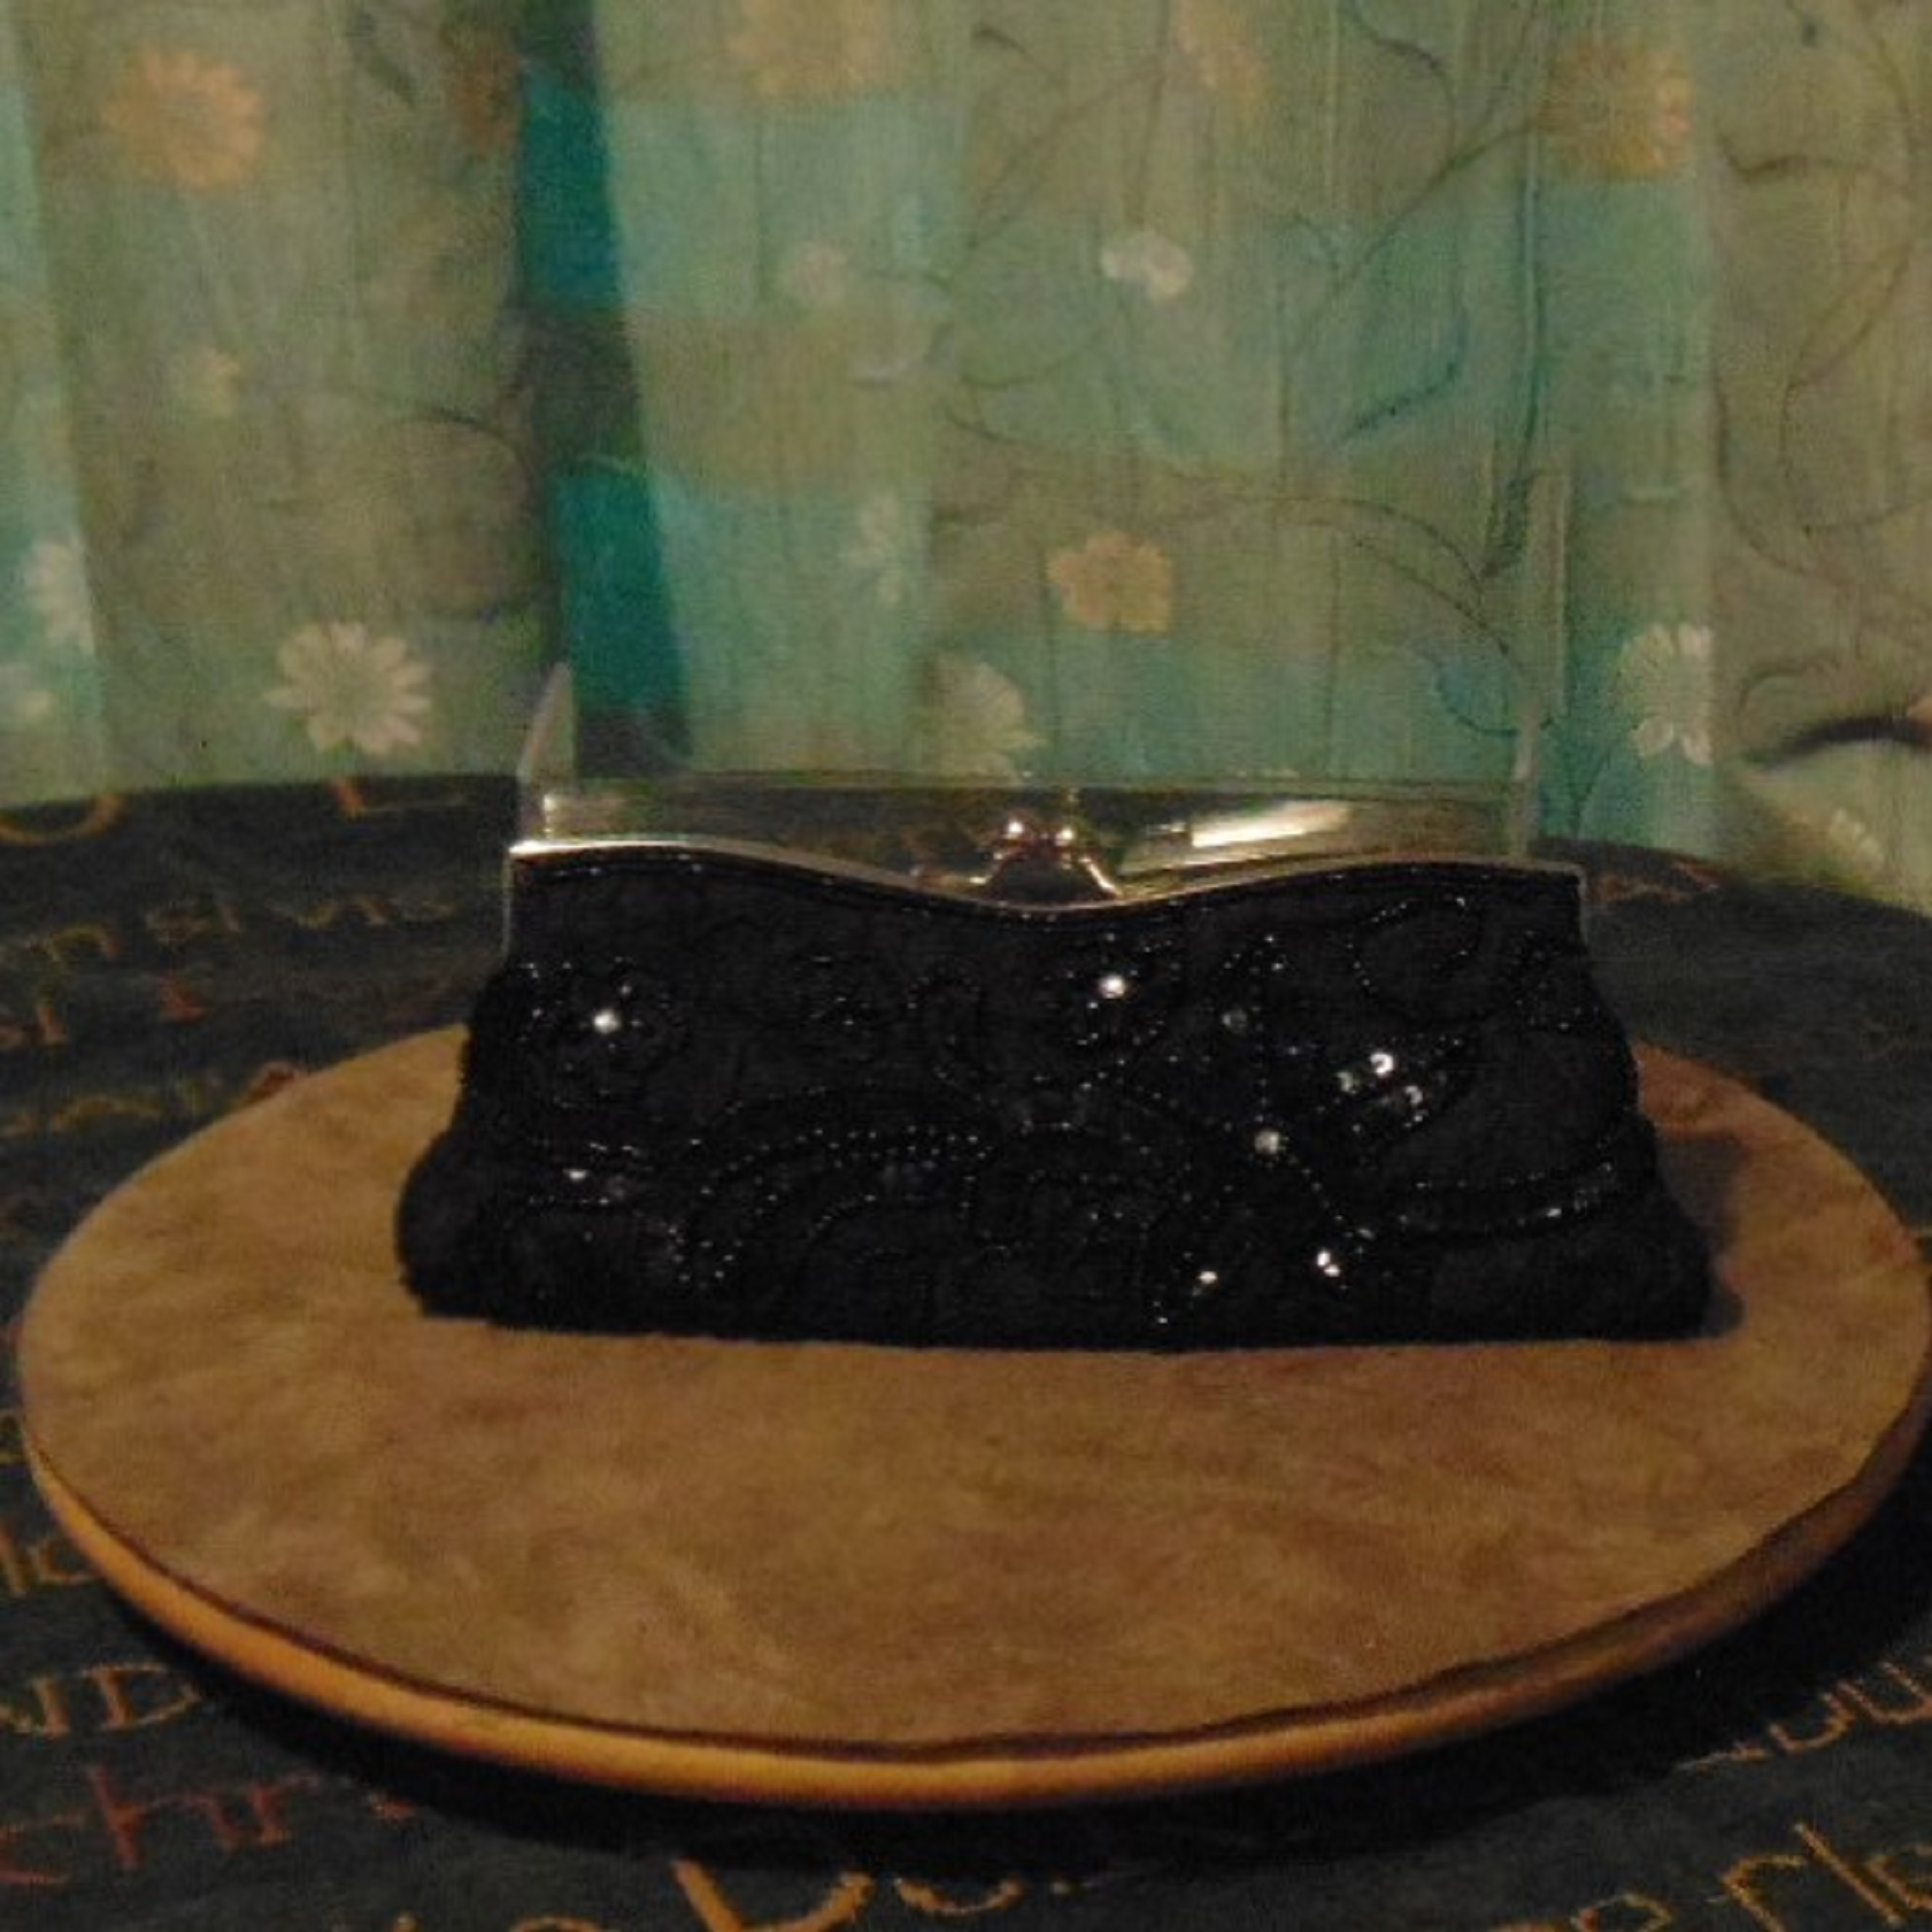 Bag - Clutch Bag with Cameo and other Embellishments